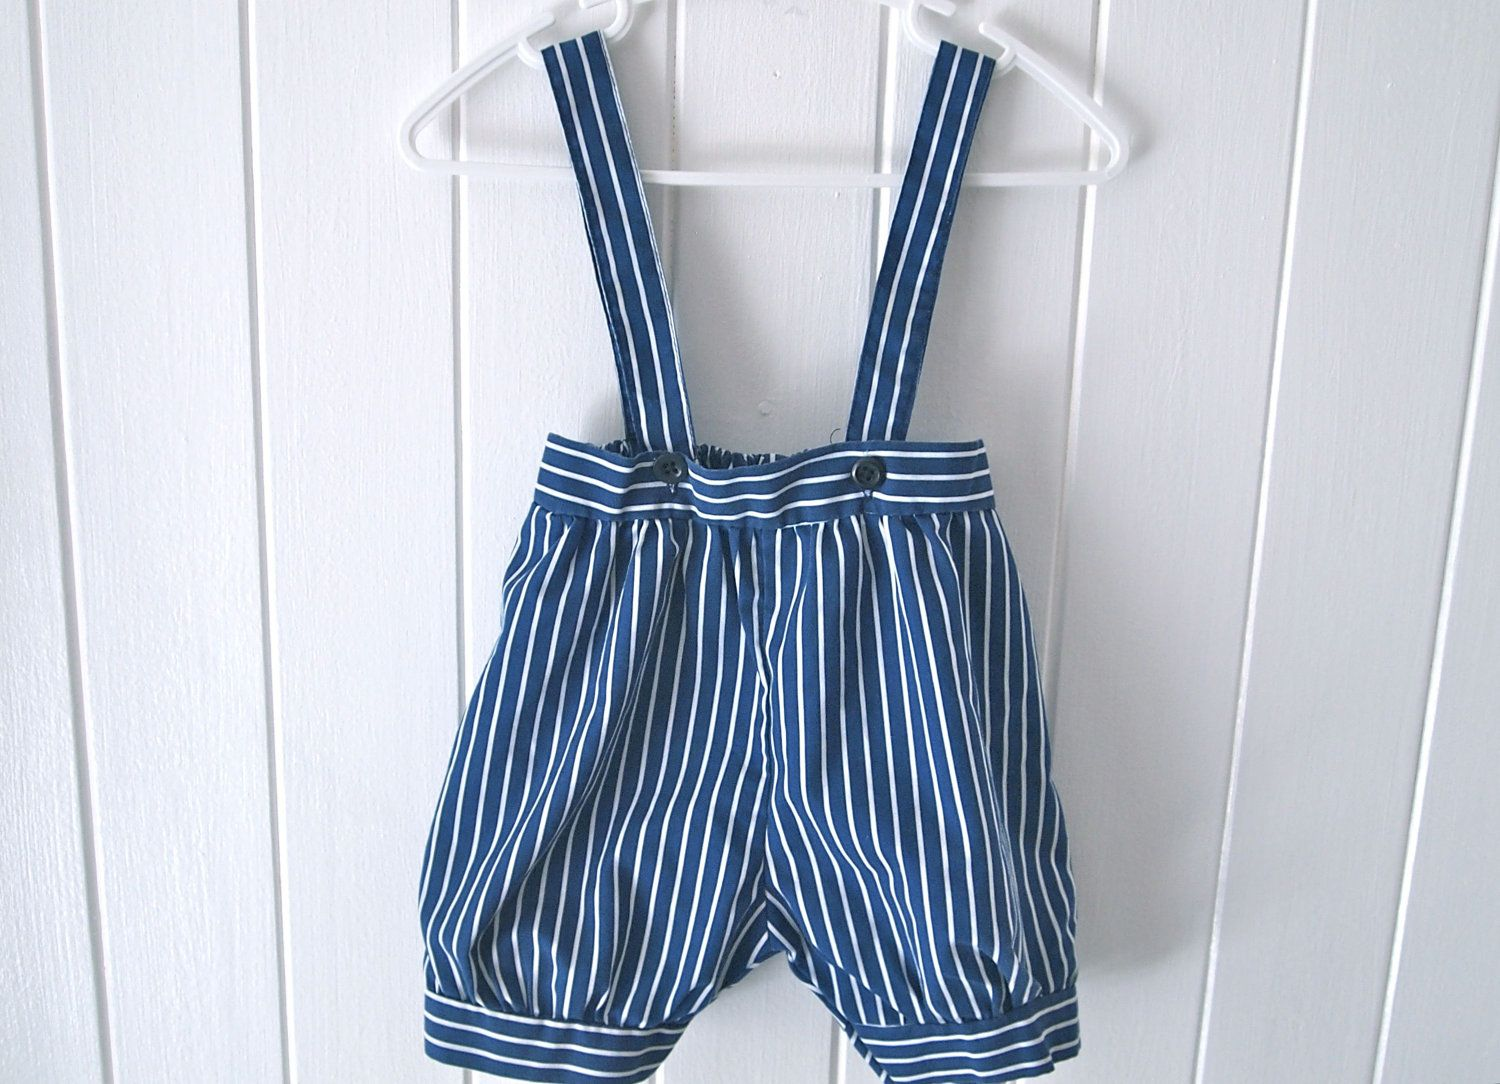 Awesome vintage inspired pants with suspenders. I want to try making this from one of my partners old shirts